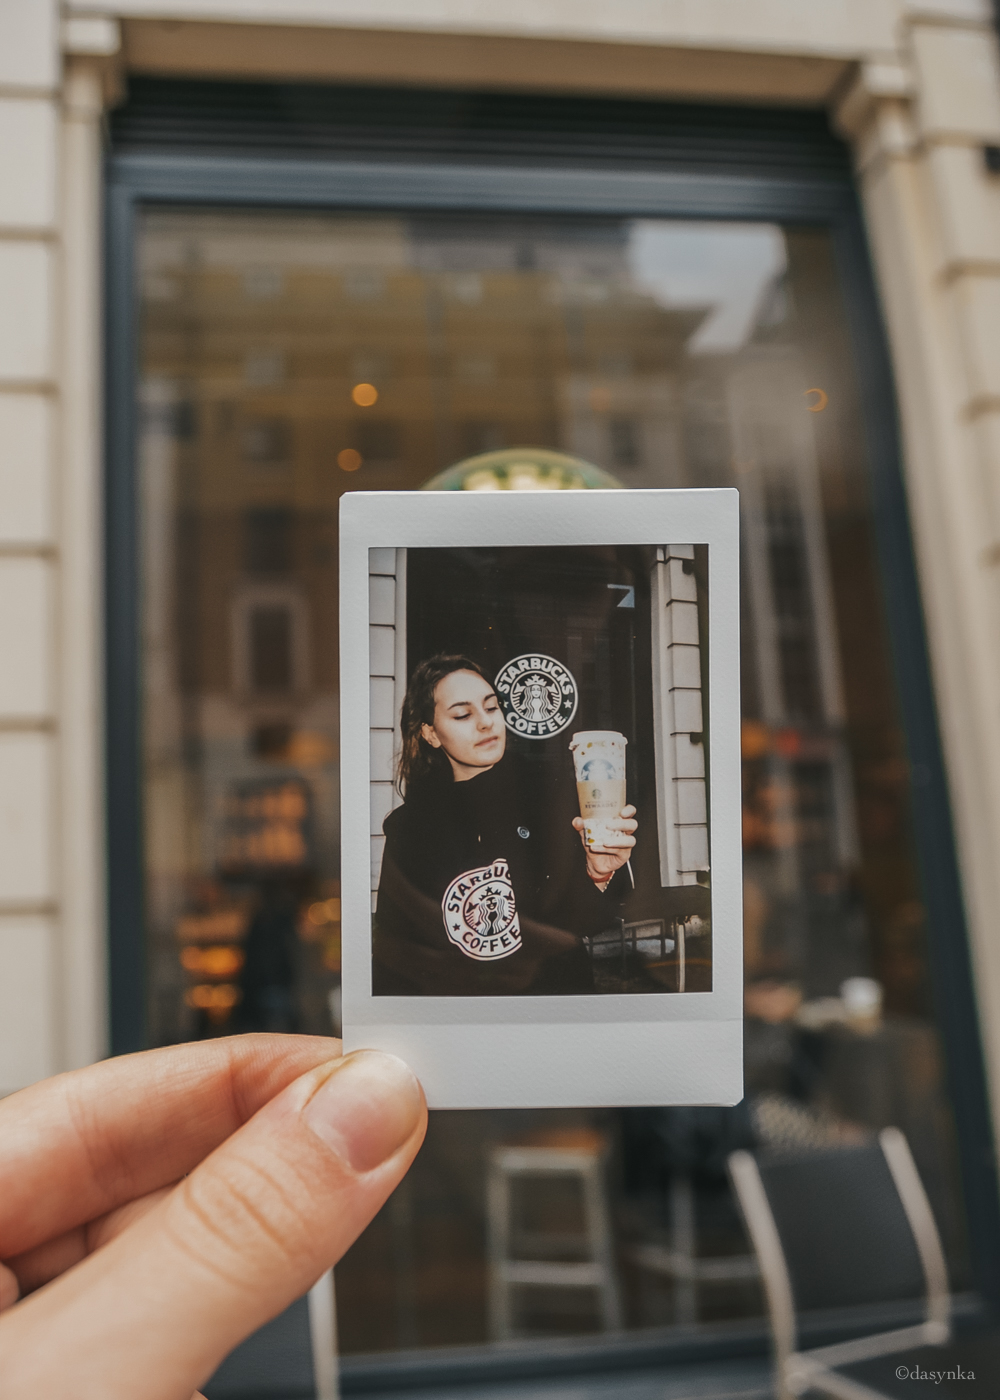 dasynka-fashion-blog-blogger-influencer-inspiration-shooting-globettrotter-travel-traveller-instagram-lifestyle-italy-ideas-italian-polaroids-polaroid-fujifilm-instax-90-8-worldmap-planisfero-mappa-mondo-pin-memories-photographs-vintage-print-london-starbucks